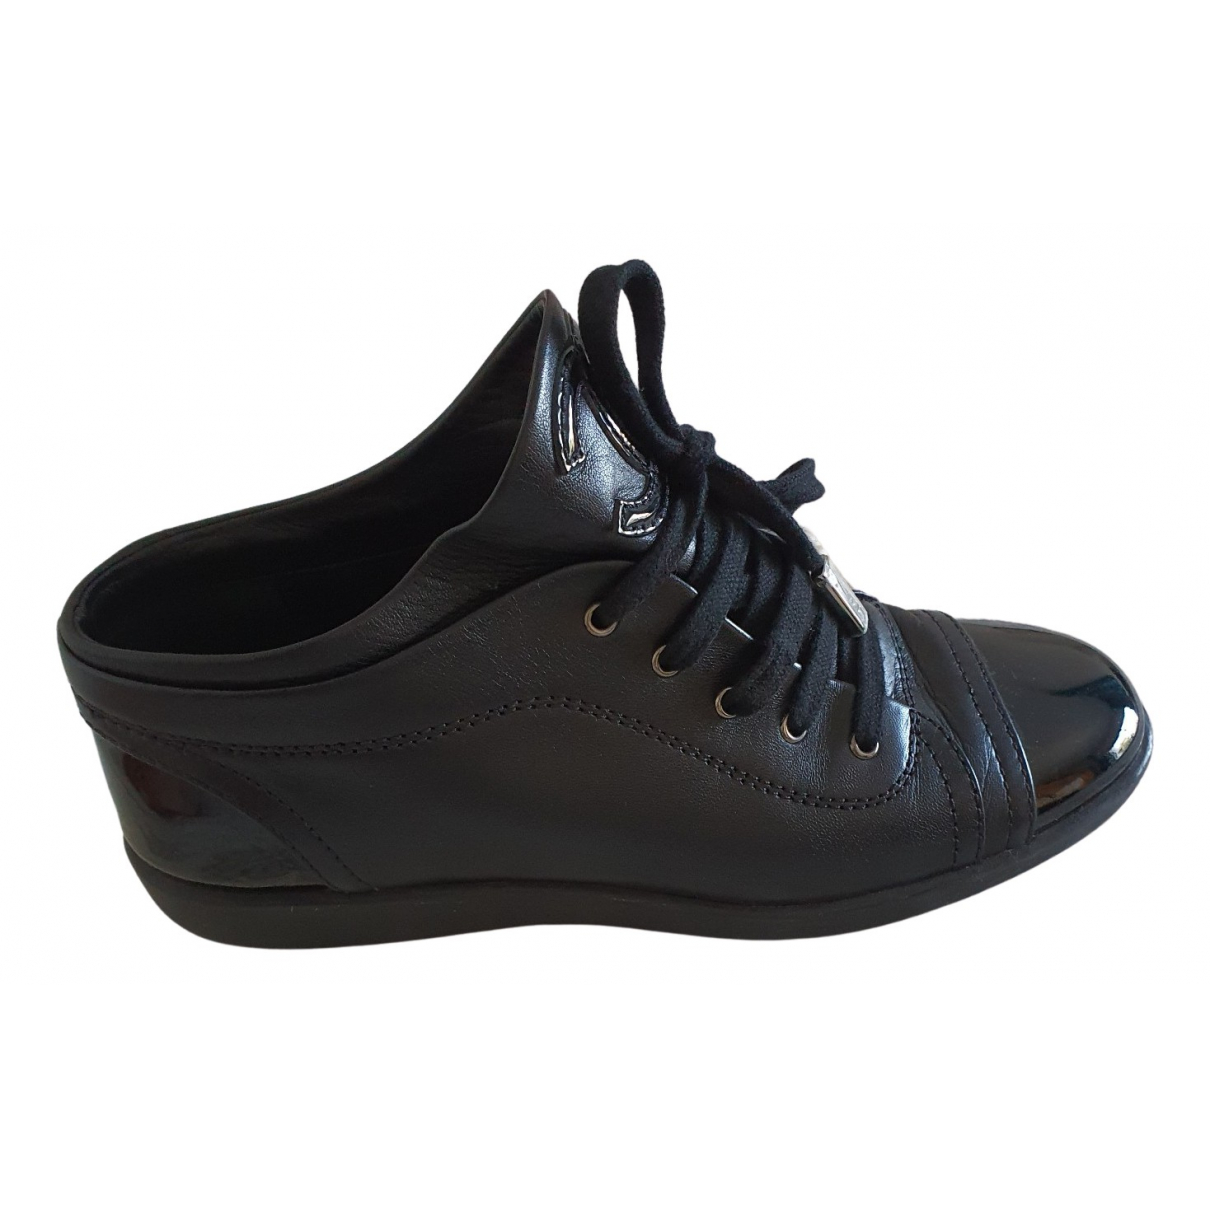 Chanel N Black Leather Trainers for Women 39 EU